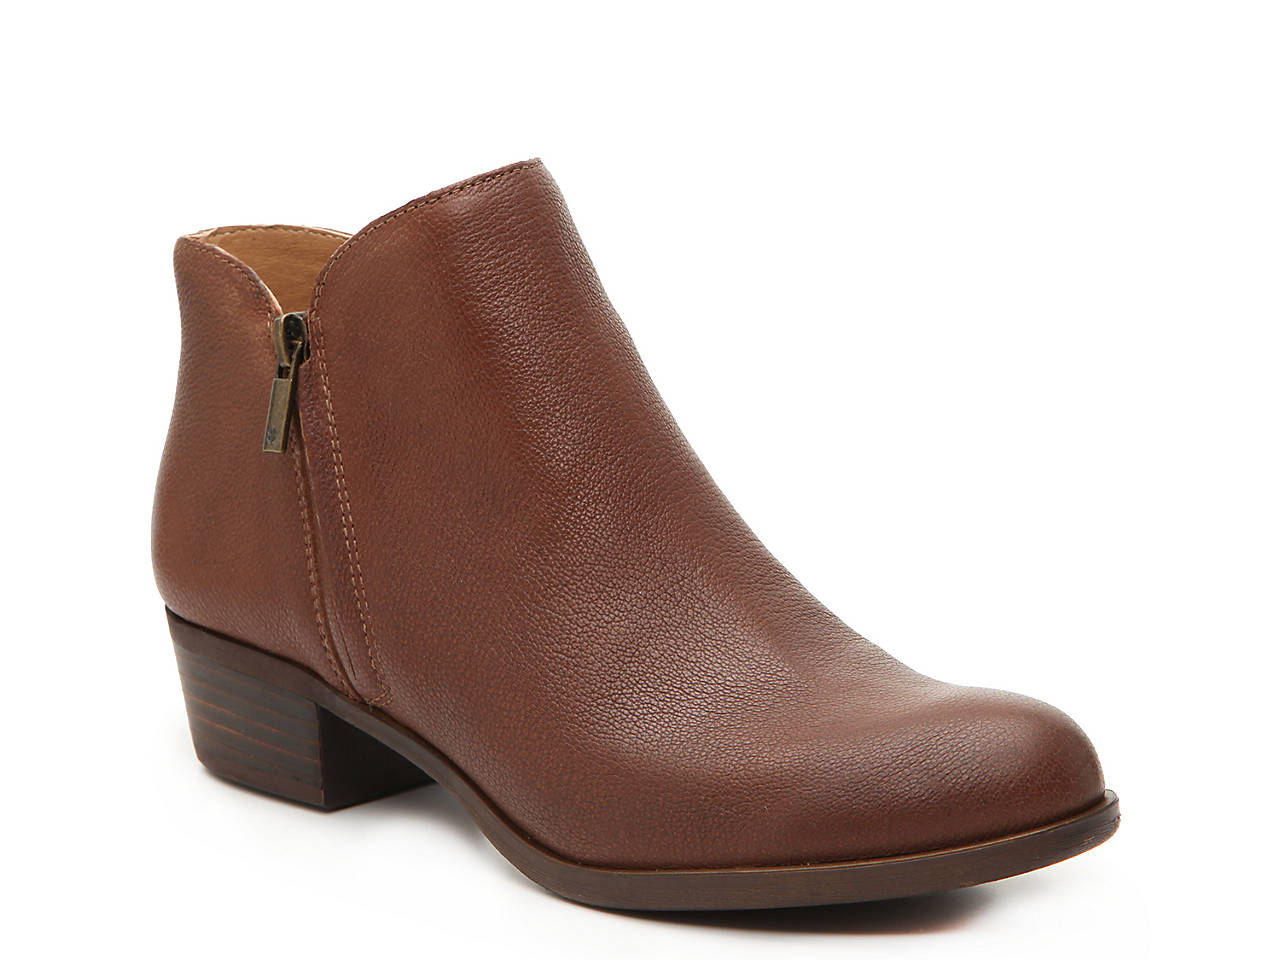 81c59a63a1c Lucky Brand Barough Bootie Women s Shoes